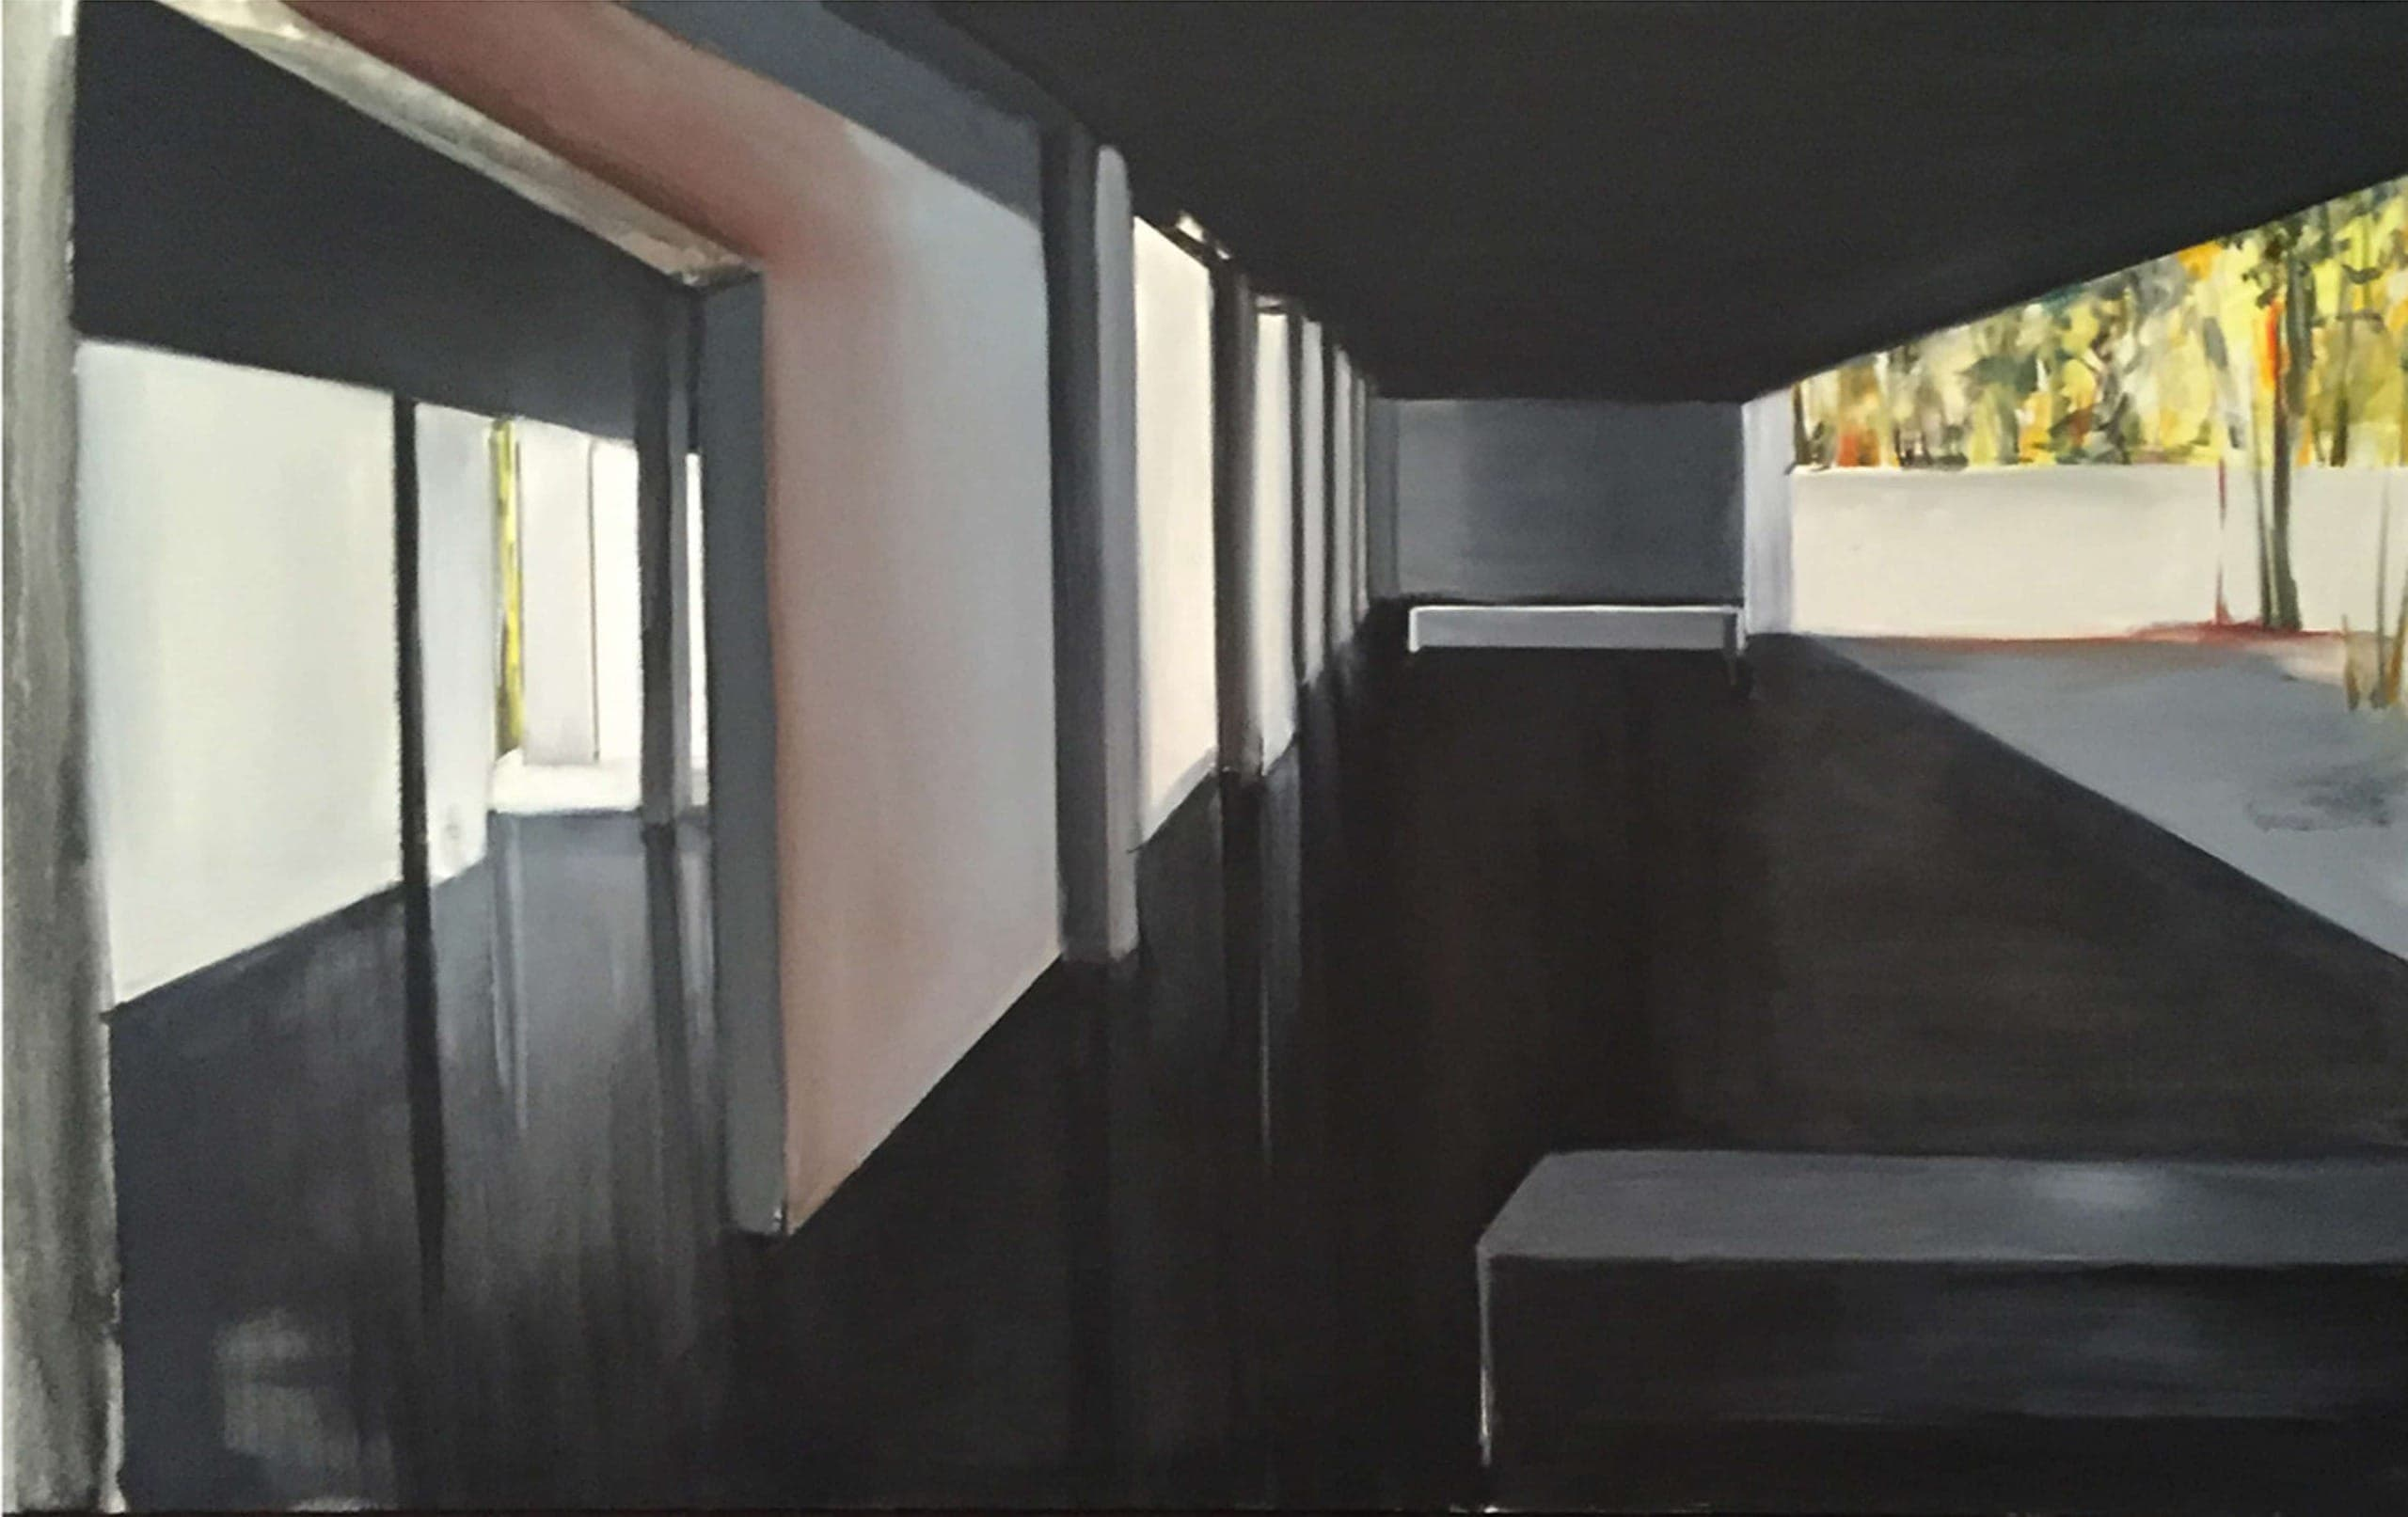 Pavillion 2016 oil on canvas 38x72